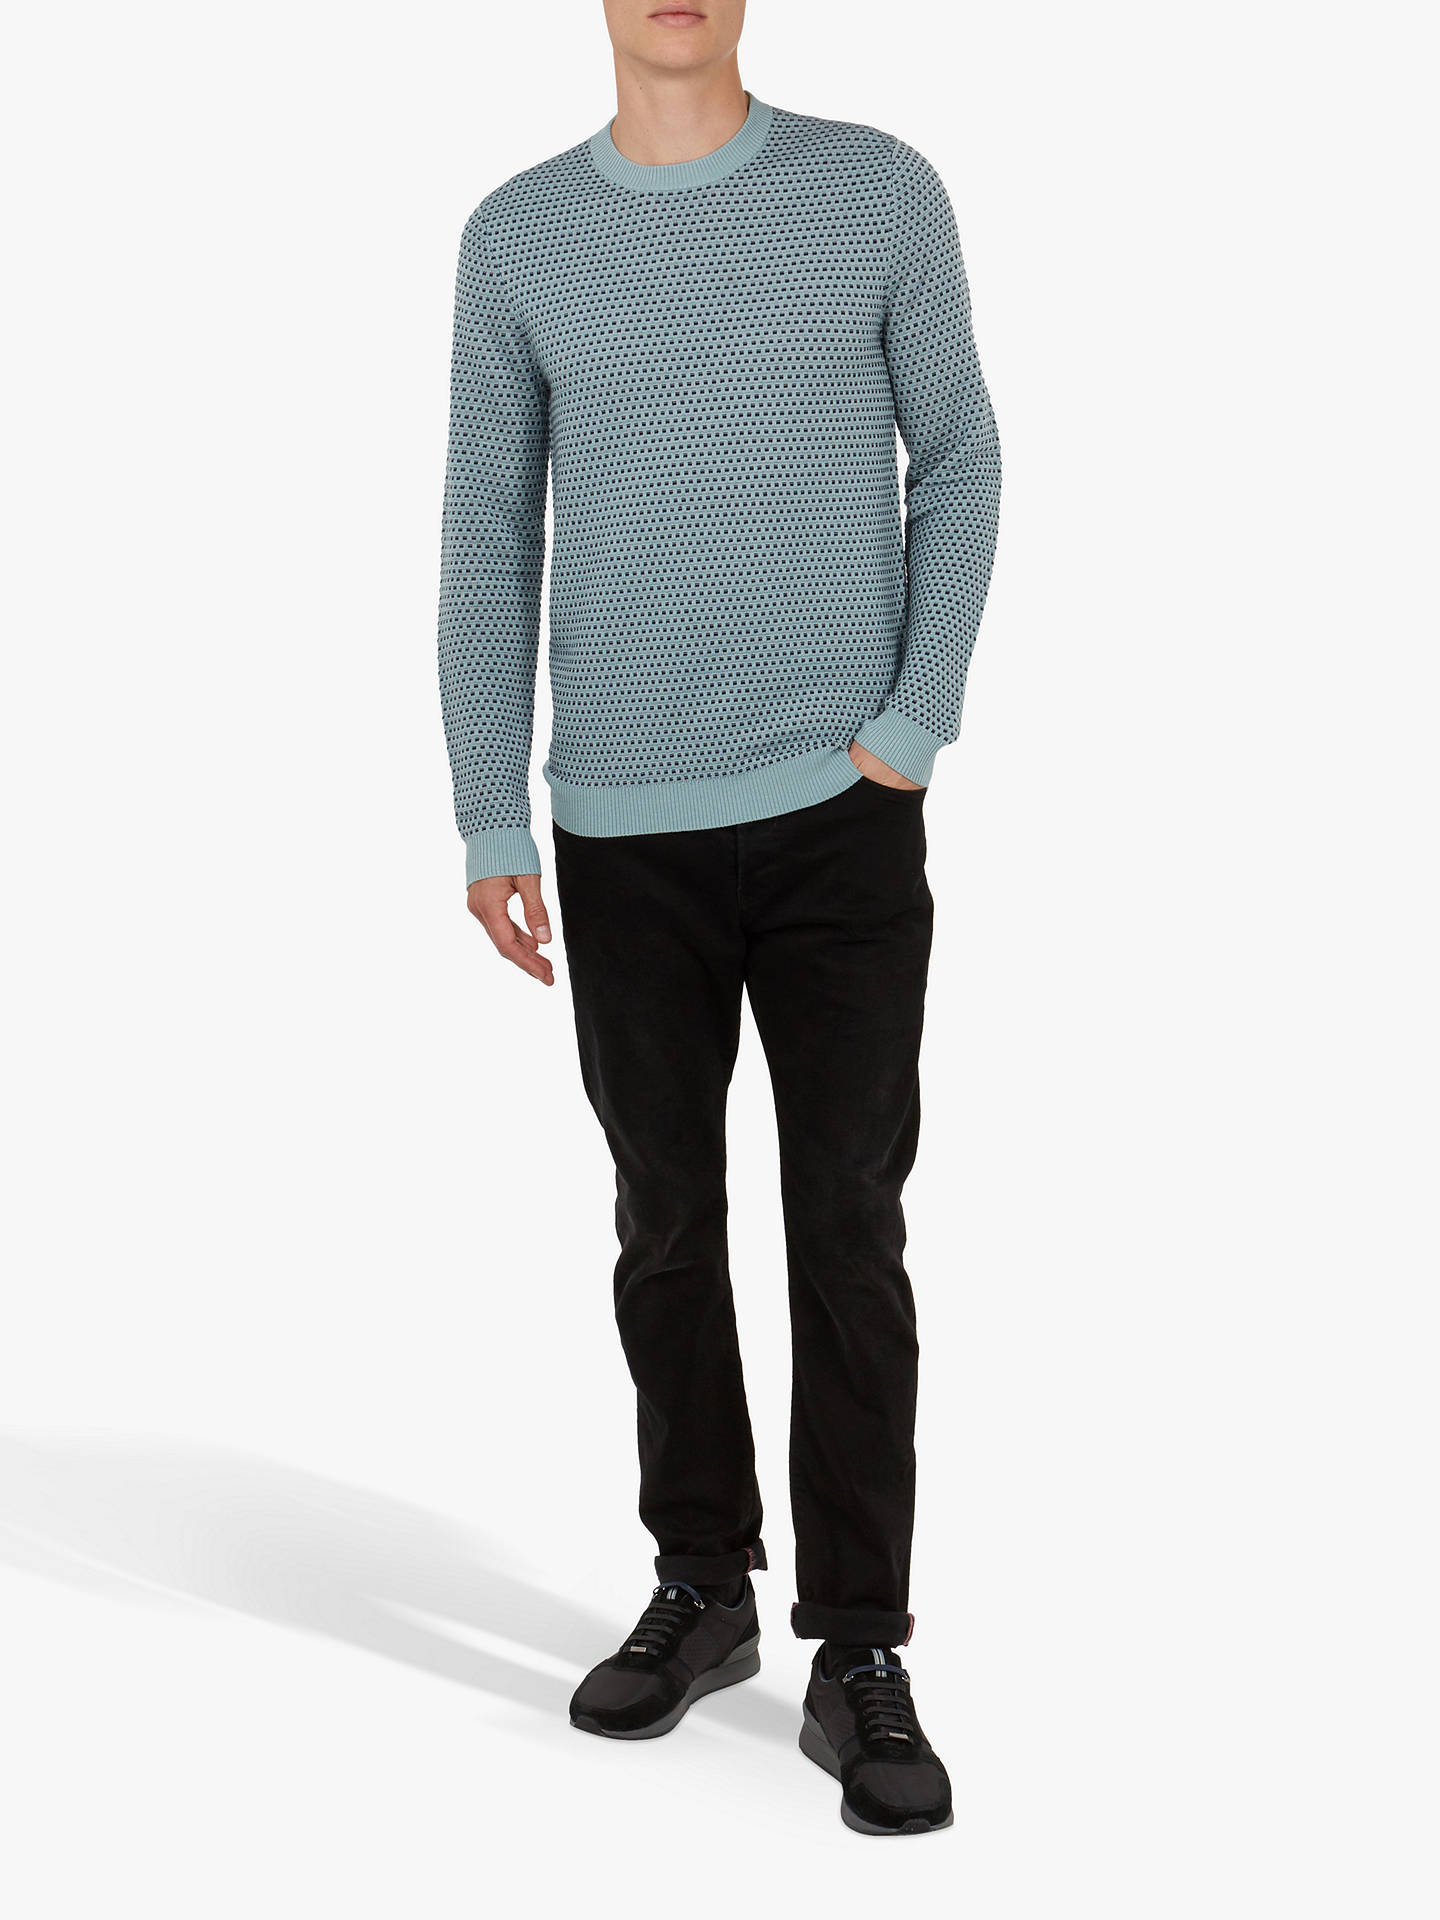 BuyTed Baker Malttea Textured Crew Neck Jumper, Blue Light, 3 Online at johnlewis.com